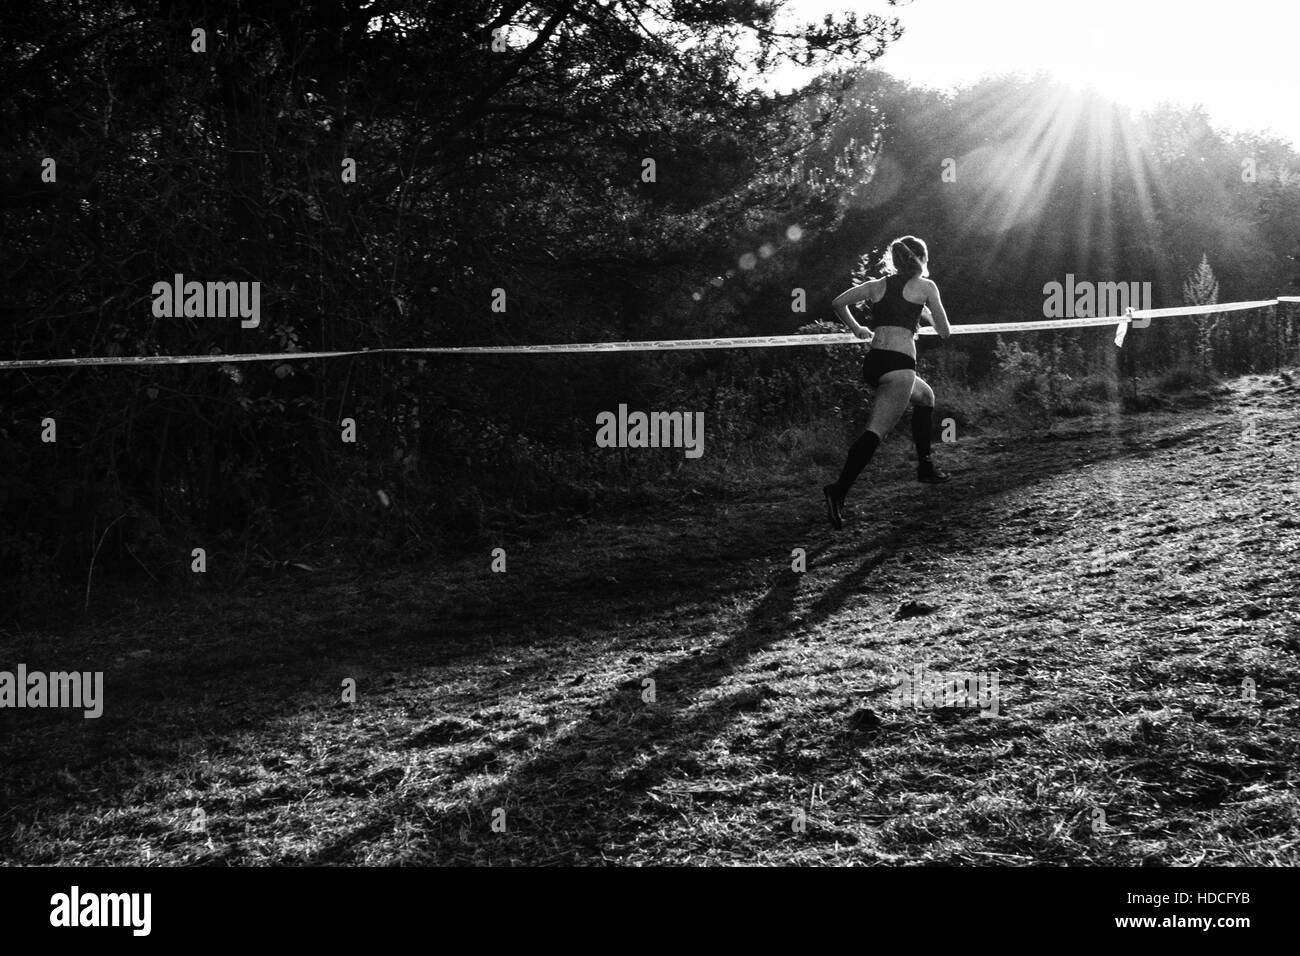 Sarah McDonald (Birchfield Harriers) competes in the ECCA Cross Country Relays at Mansfield, UK, on 7/11/2015 - Stock Image